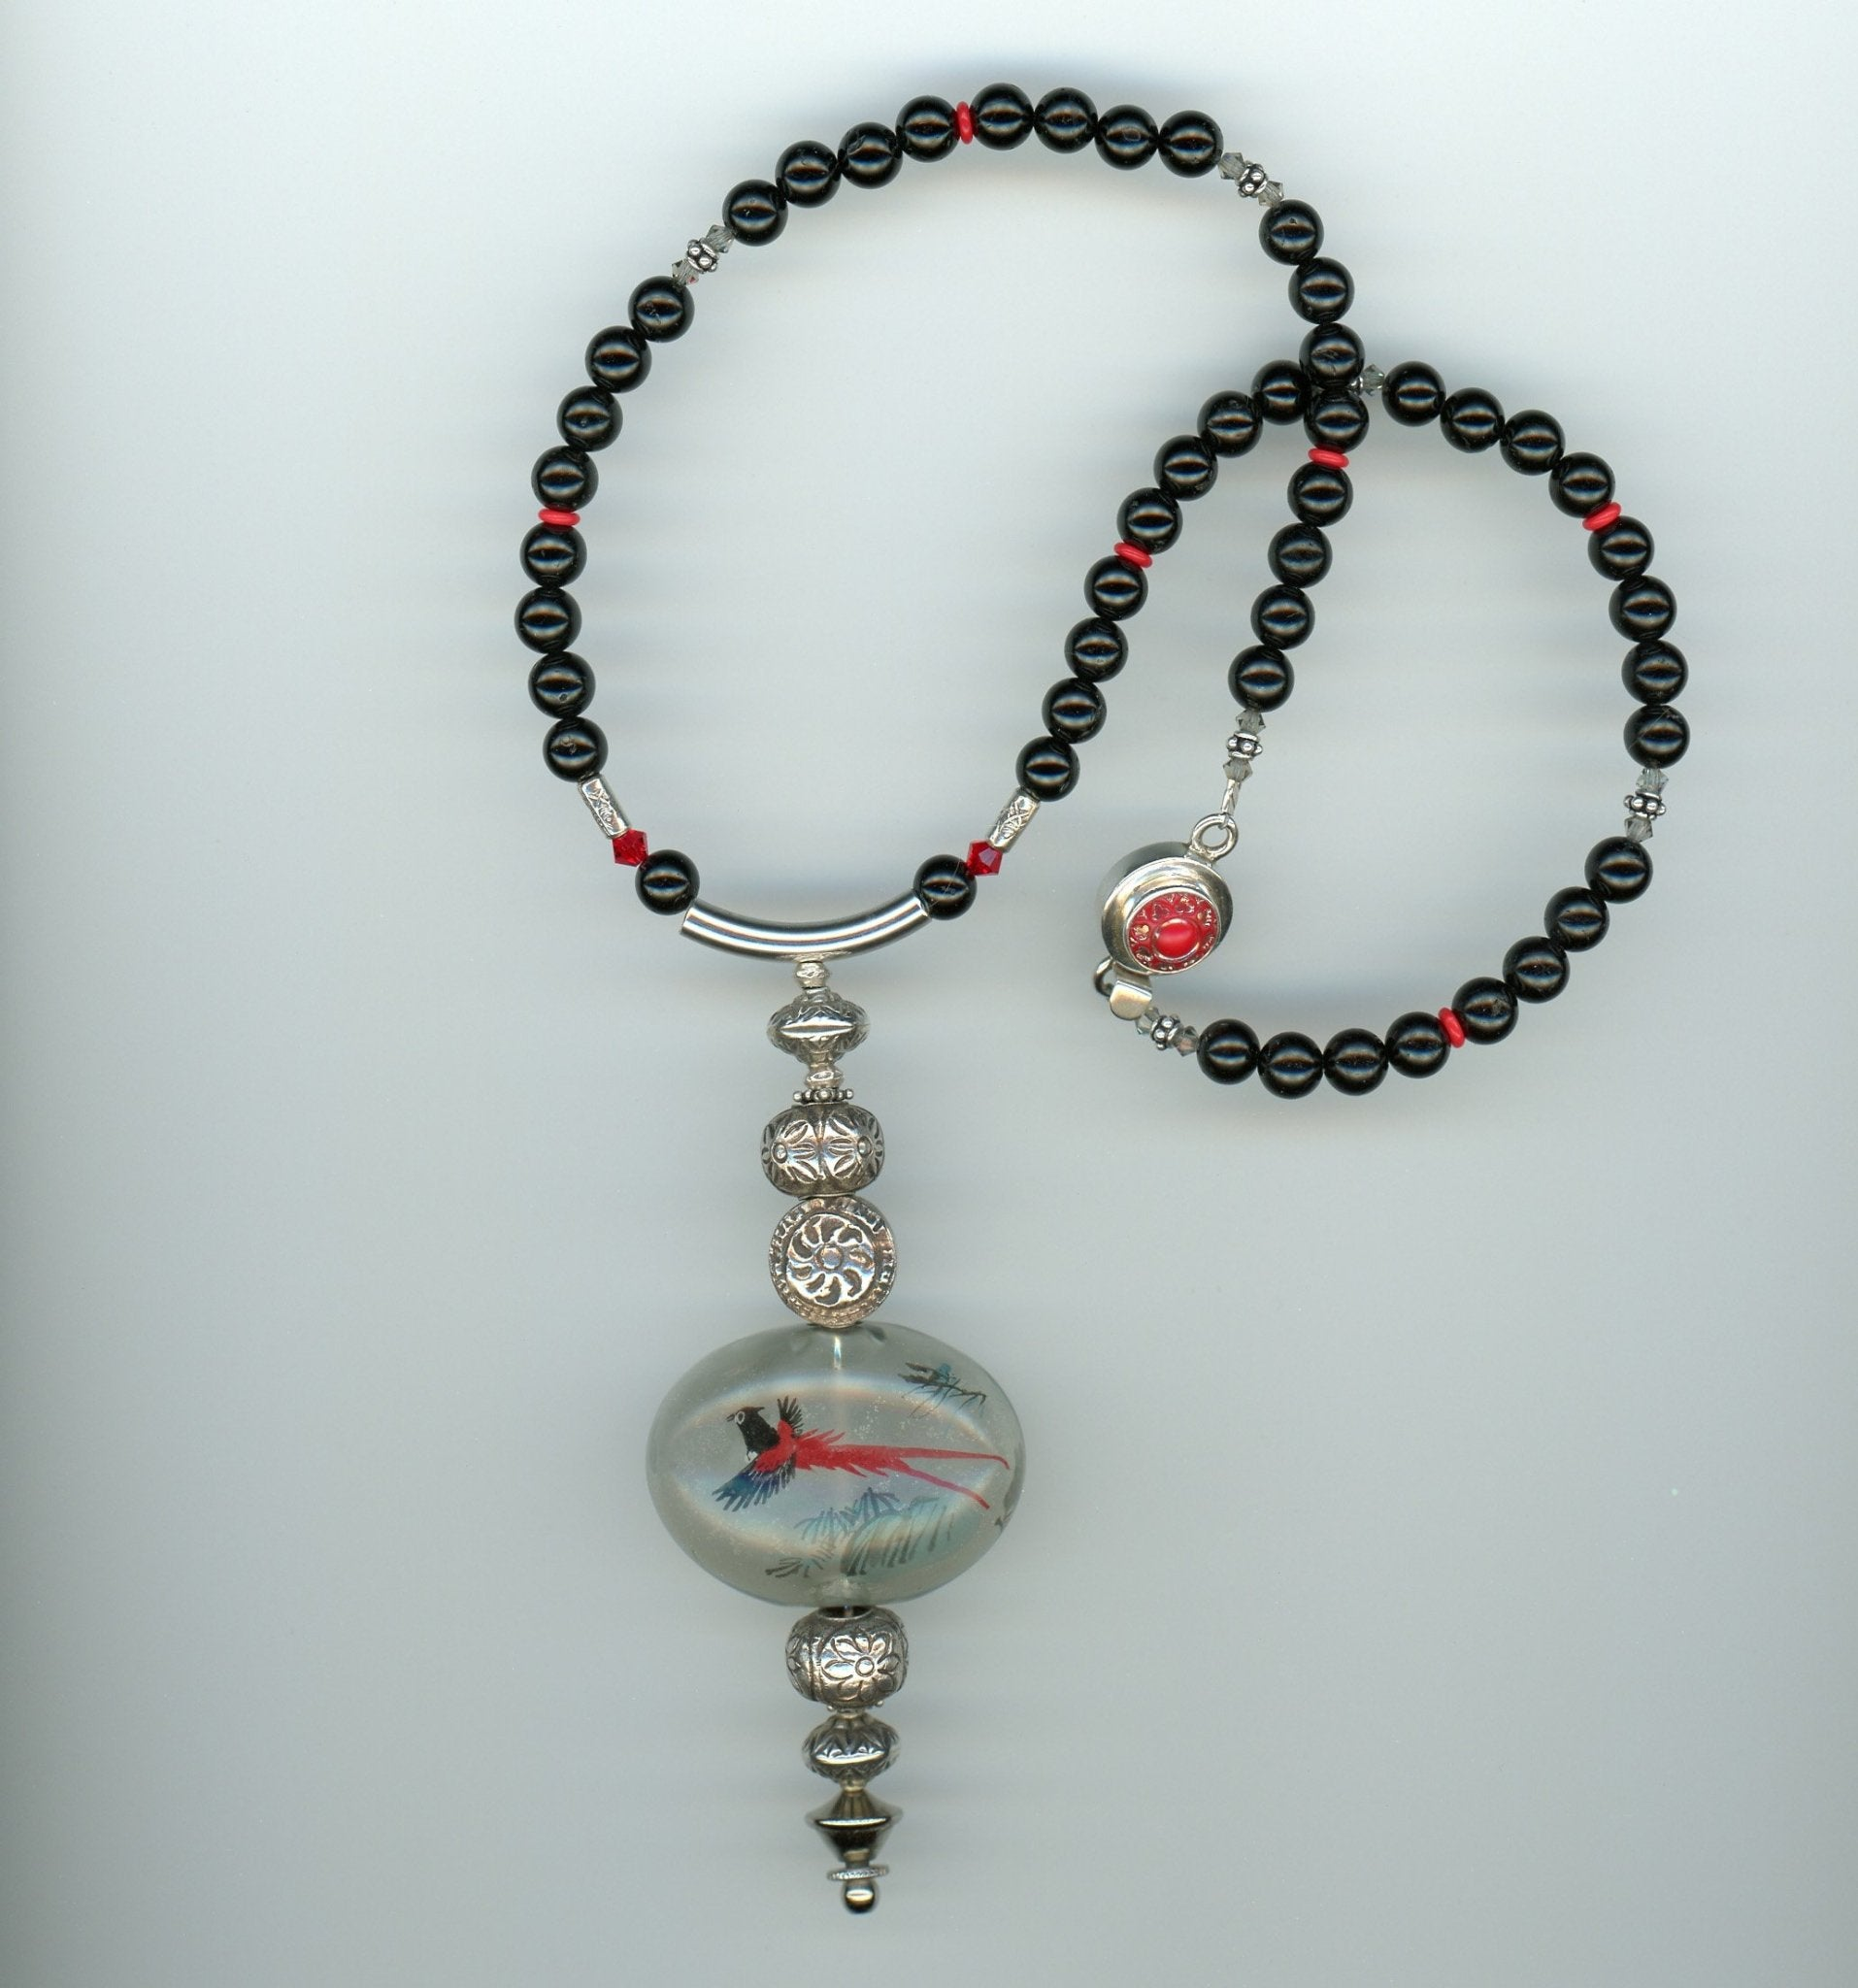 Phoenix Rising Vintage Glass, Tourmaline and Sterling Silver Necklace - UniqueCherie